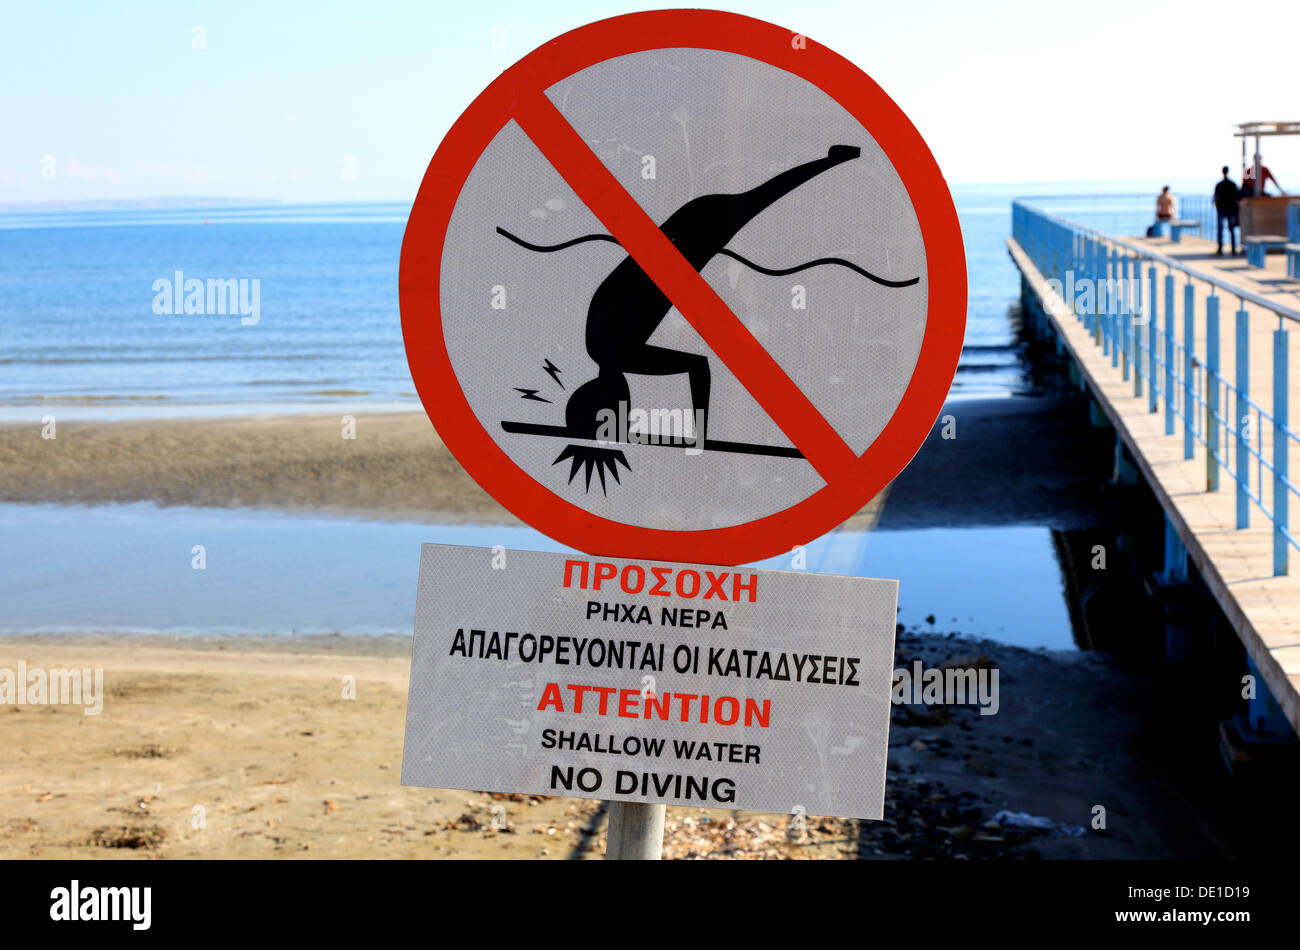 Jump Cyprus, beach, sea, prohibition sign, upside down into the water is prohibited - Stock Image